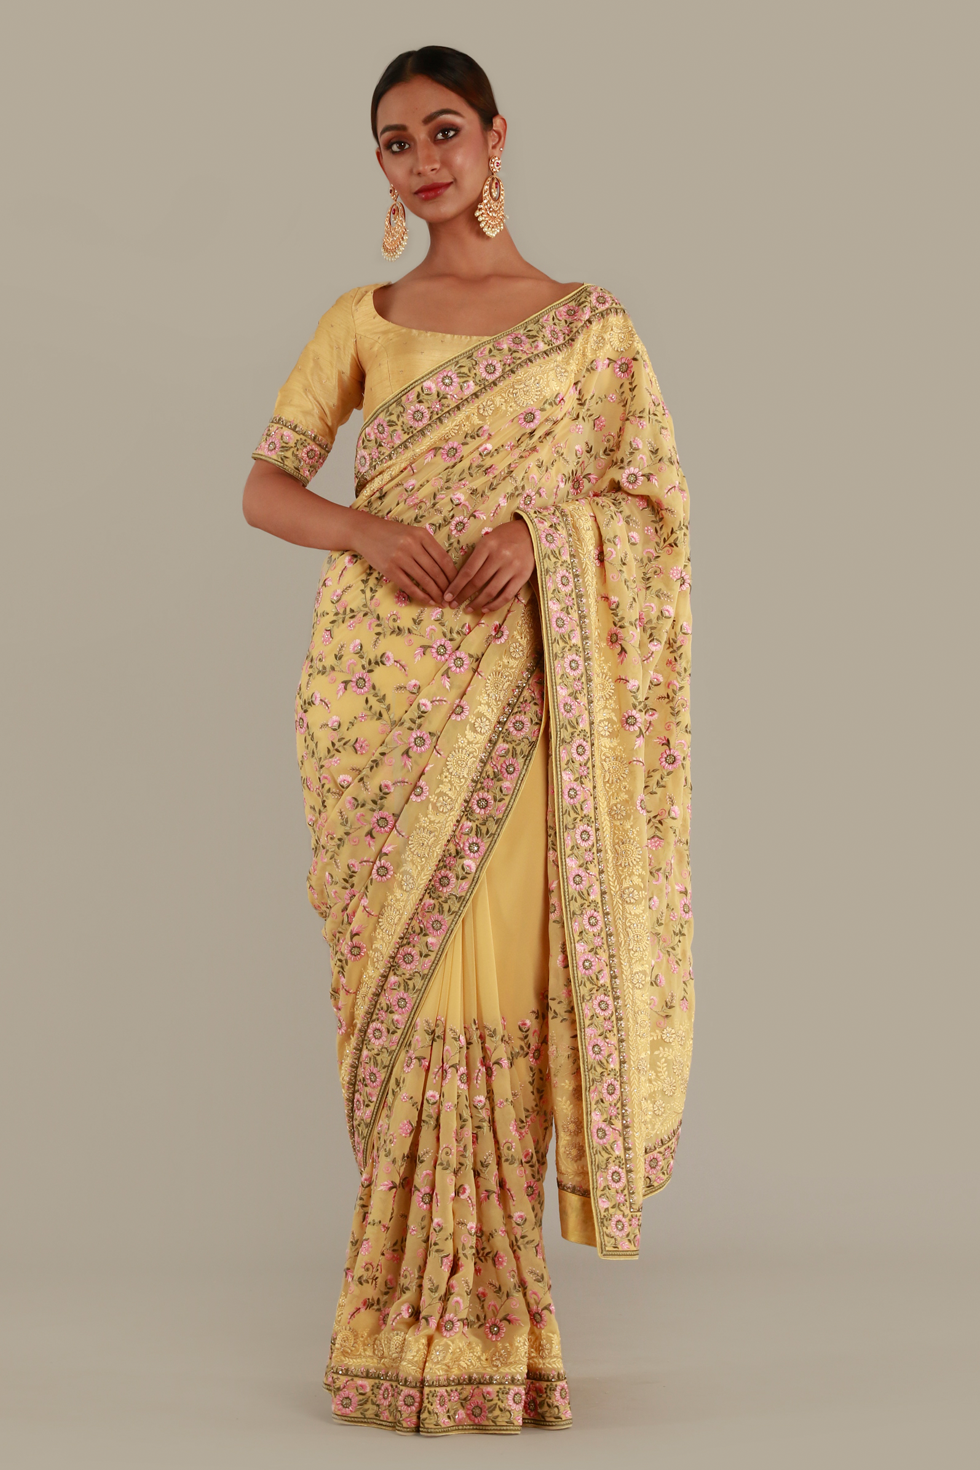 Summer yellow classic saree with contrast multi coloured thread work and matching blouse with butis